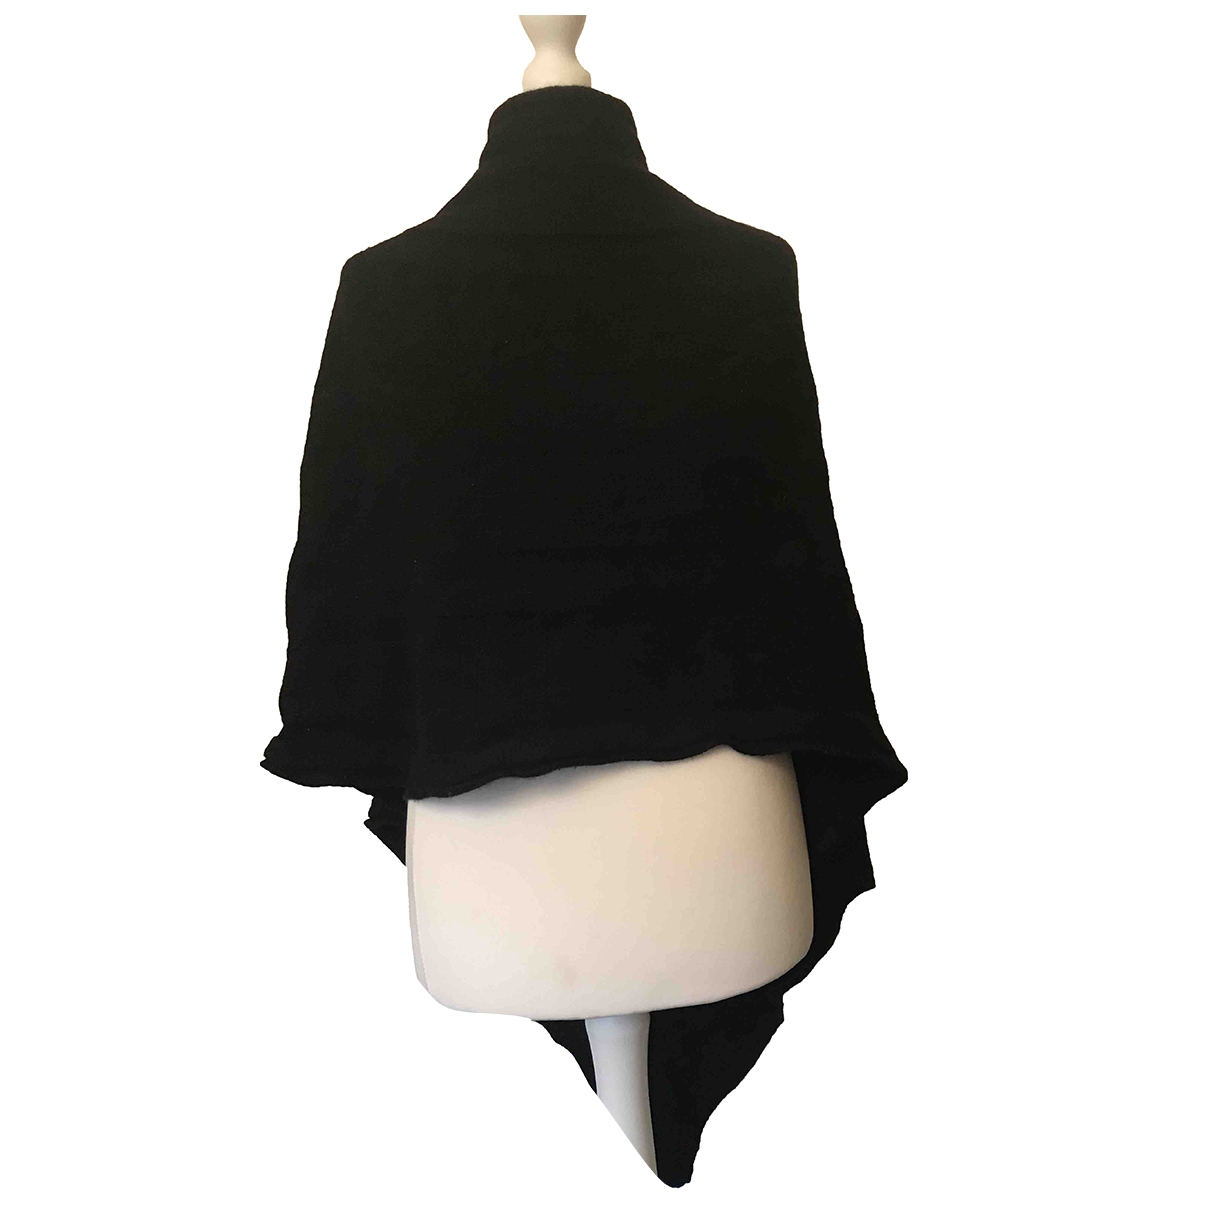 Marc Cain \N Black Wool jacket for Women One Size FR